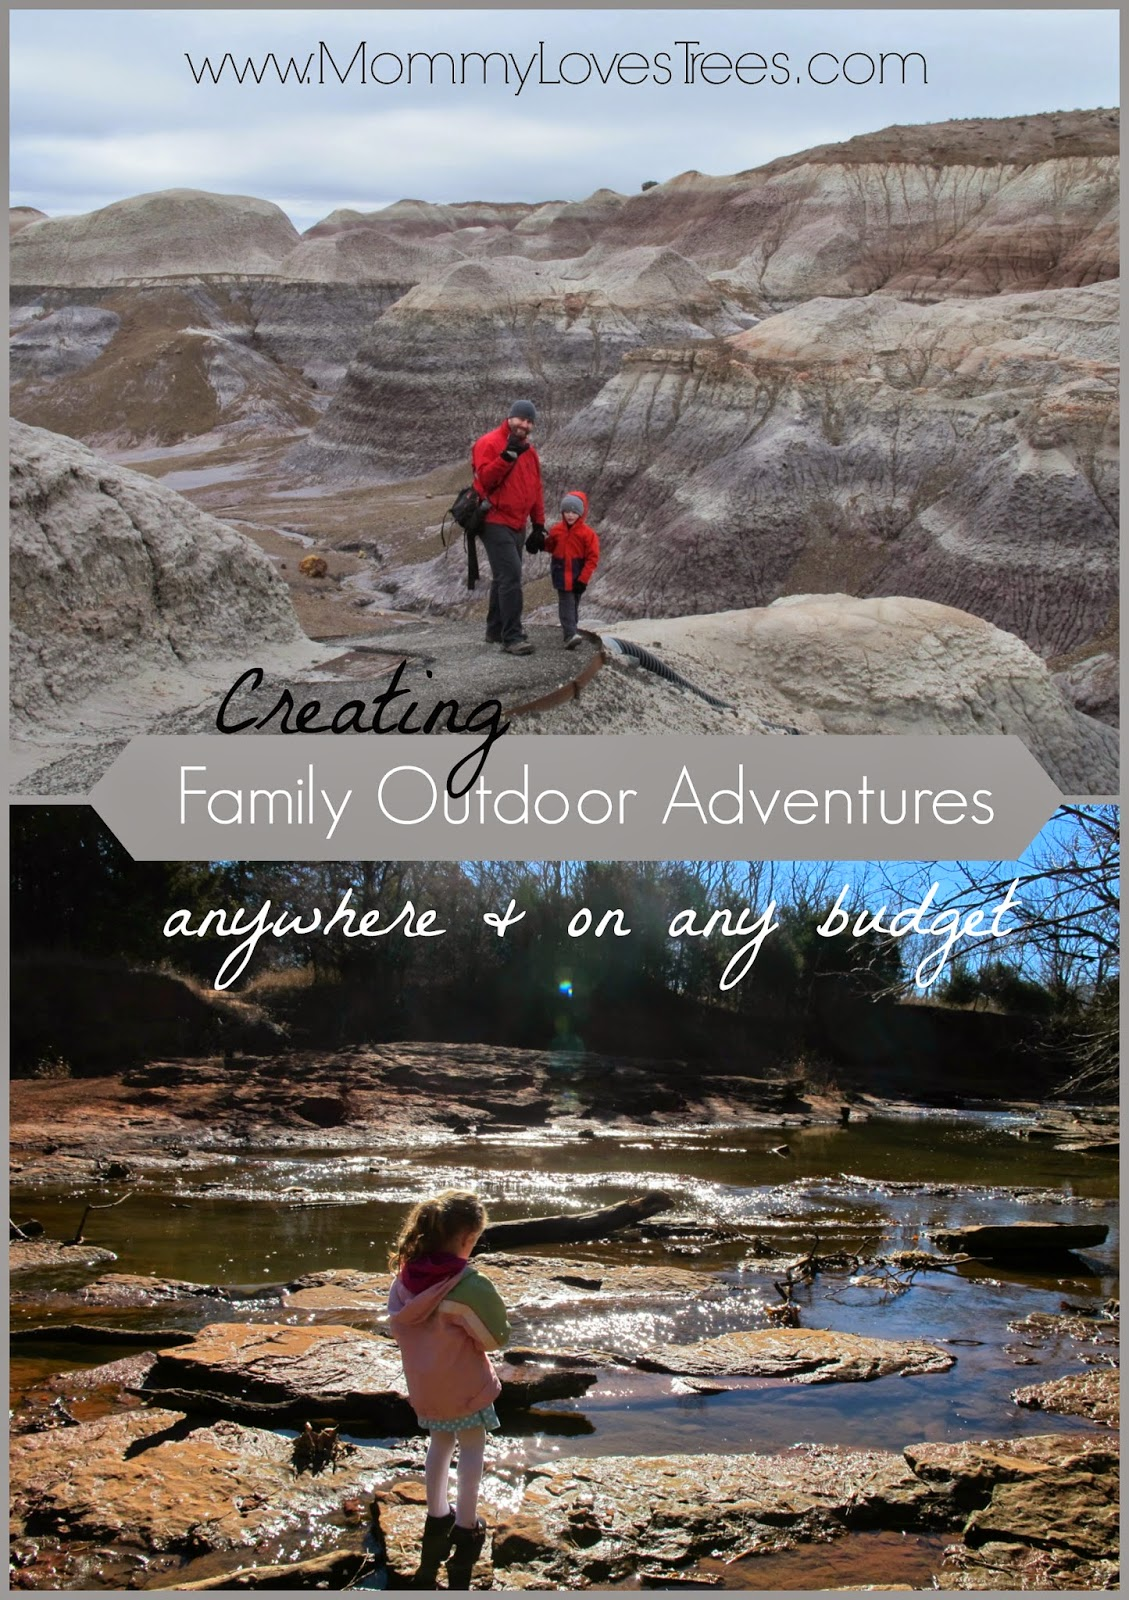 Tips For Family Outdoor Adventures Anywhere & On A Budget